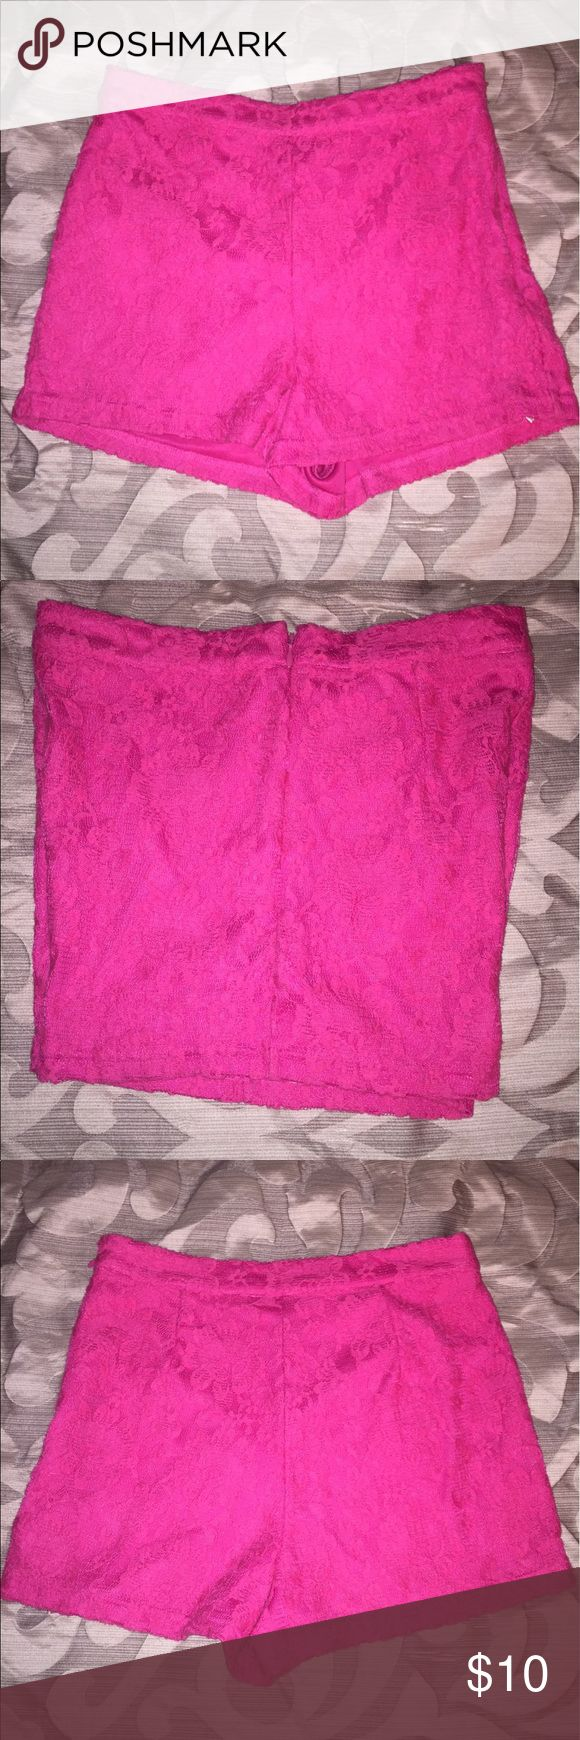 Forever21 hot pink lace shorts Forever21 hot pink lace shorts- size Small- zips up on the side Forever 21 Shorts